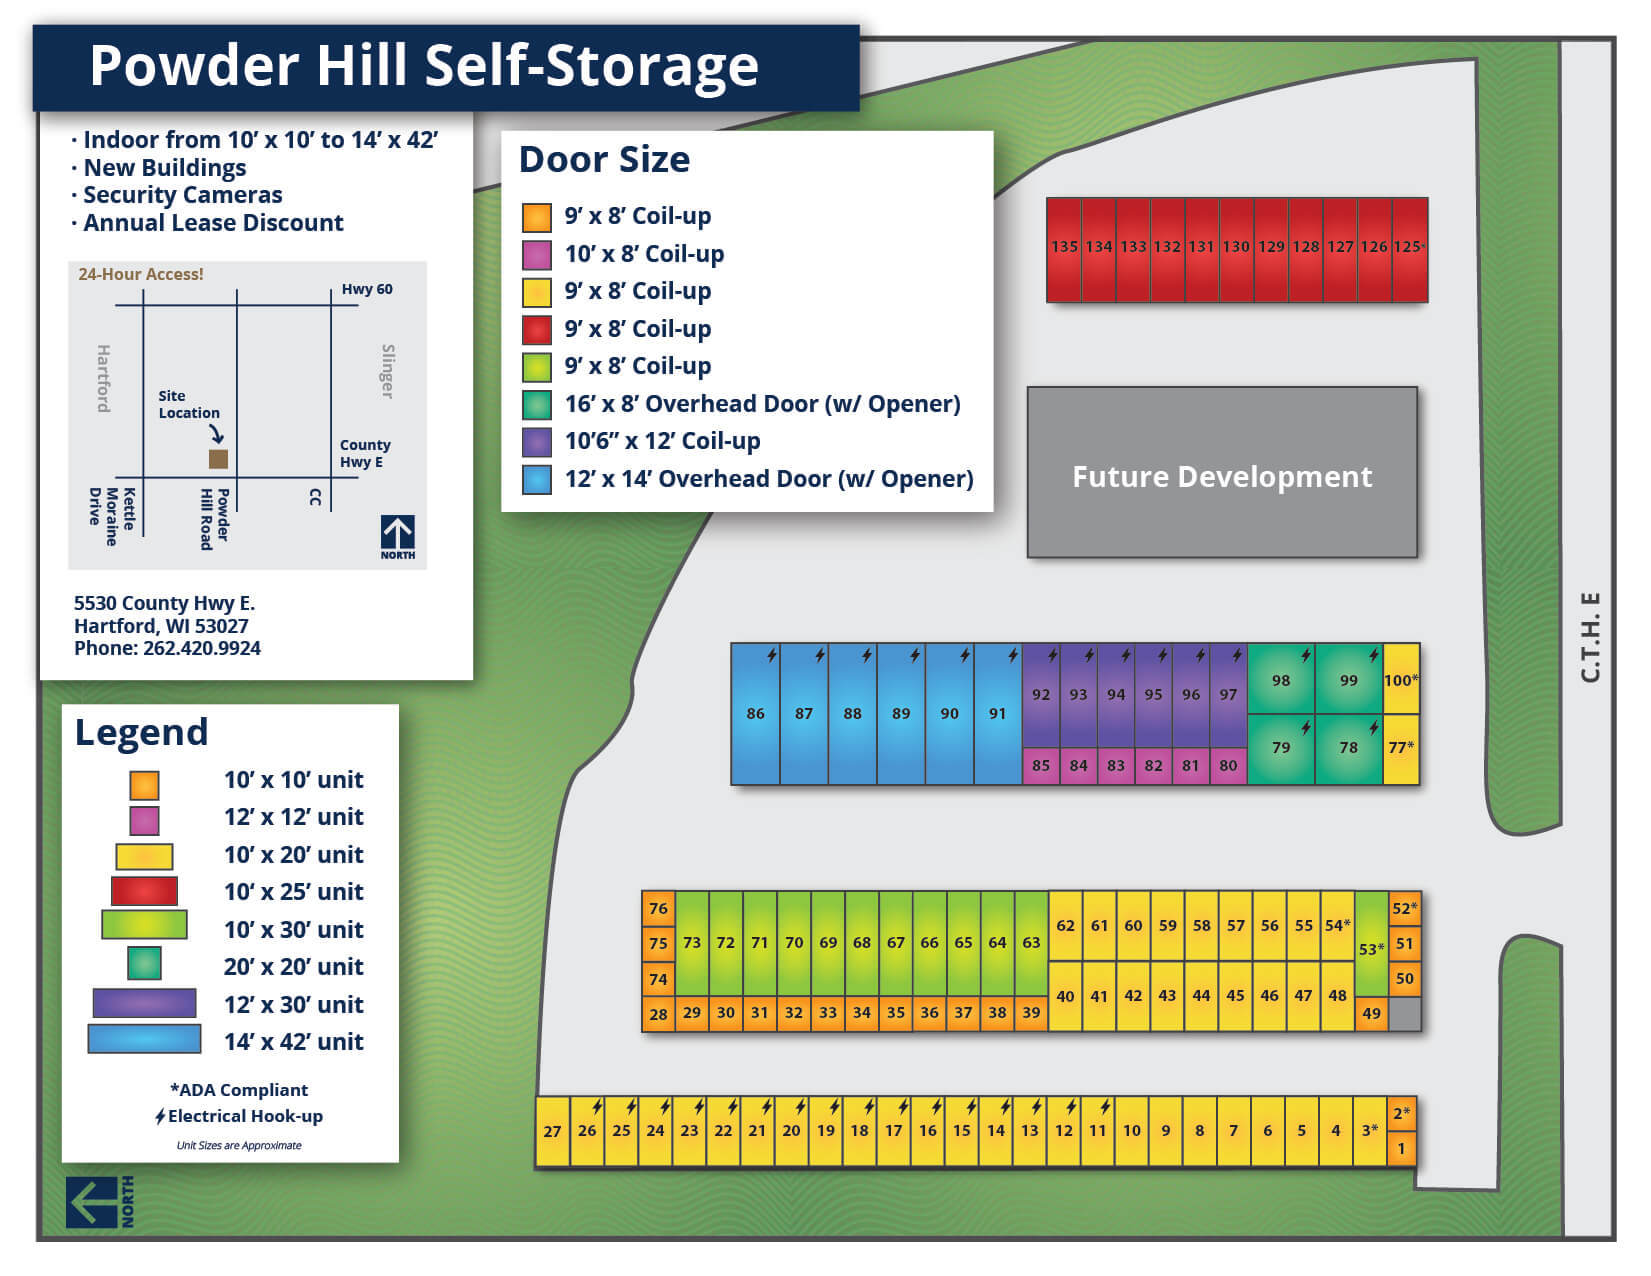 Powder Hill Self-Storage Map - April 2019